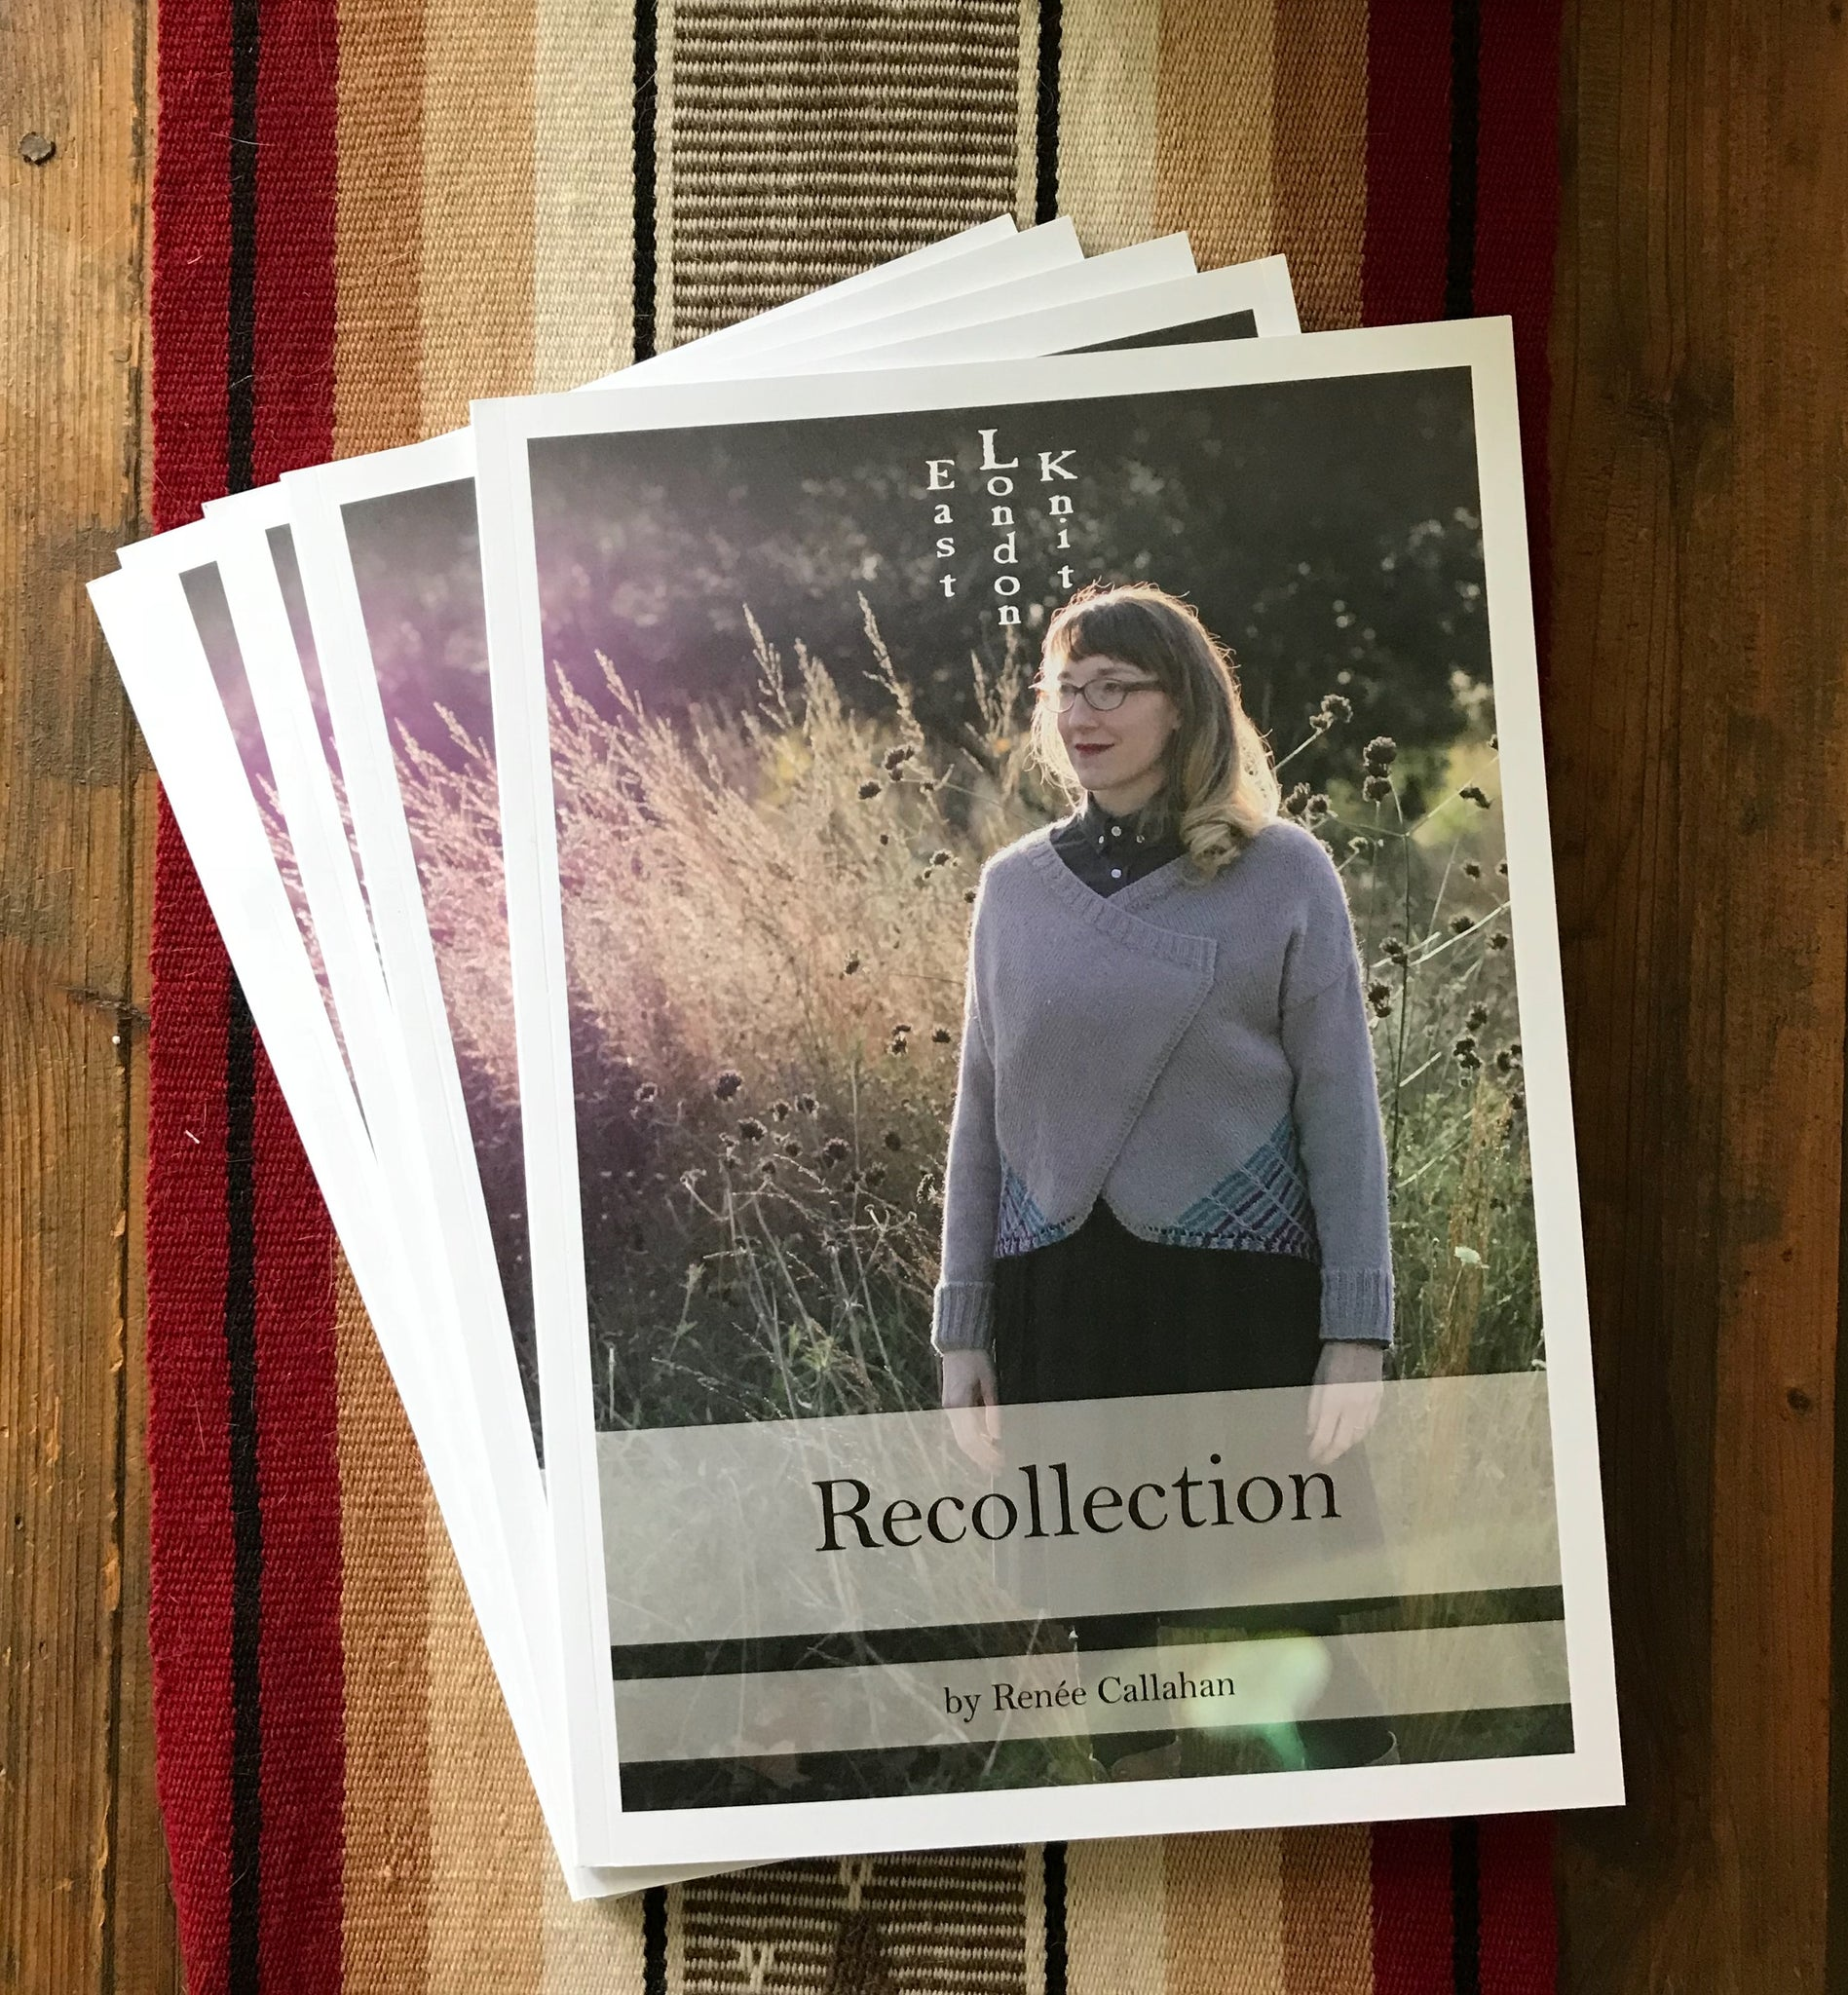 Recollection - Renée Callahan - Farm to Cable Yarns